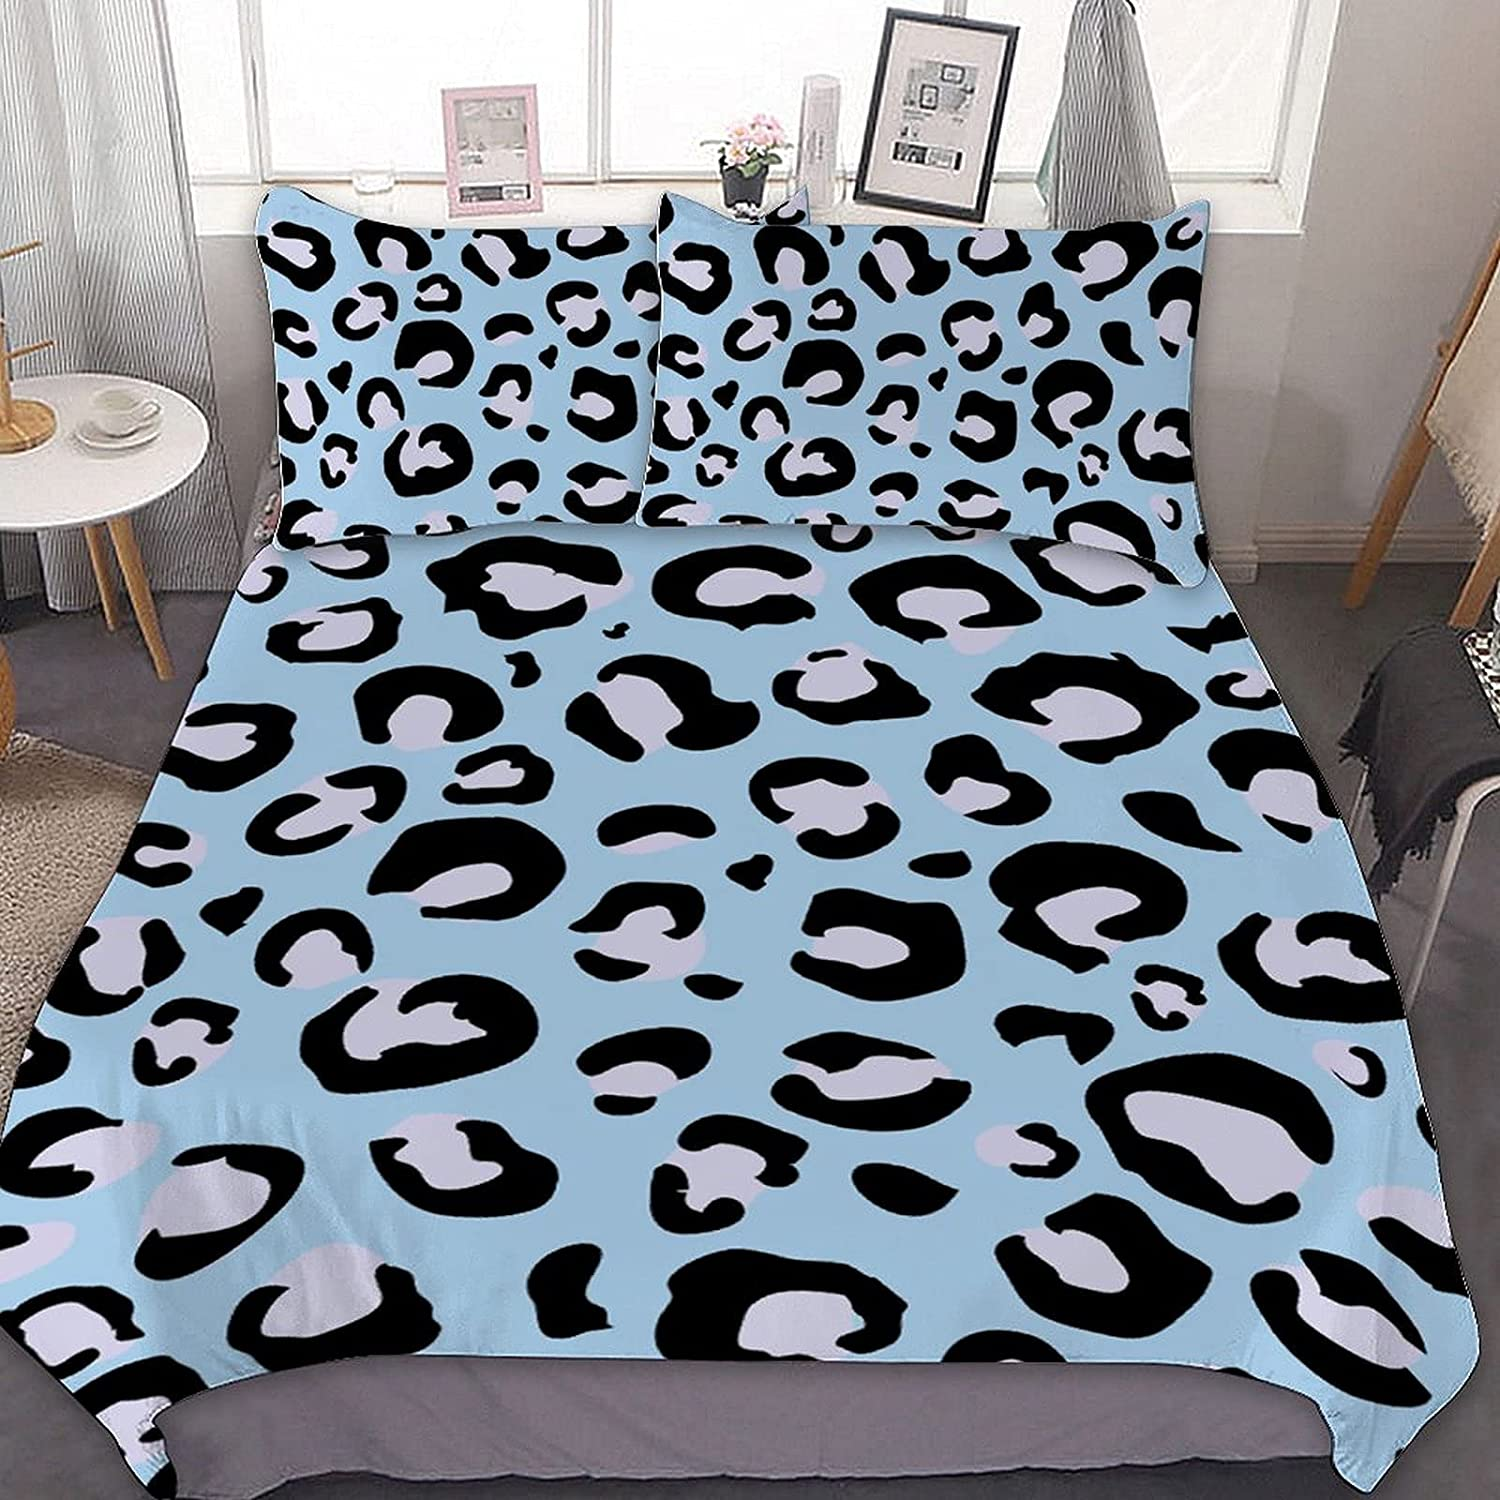 Leopard Blue 3 Piece Max 64% OFF Ranking TOP18 Comforter B for Bedding Polyester Sets